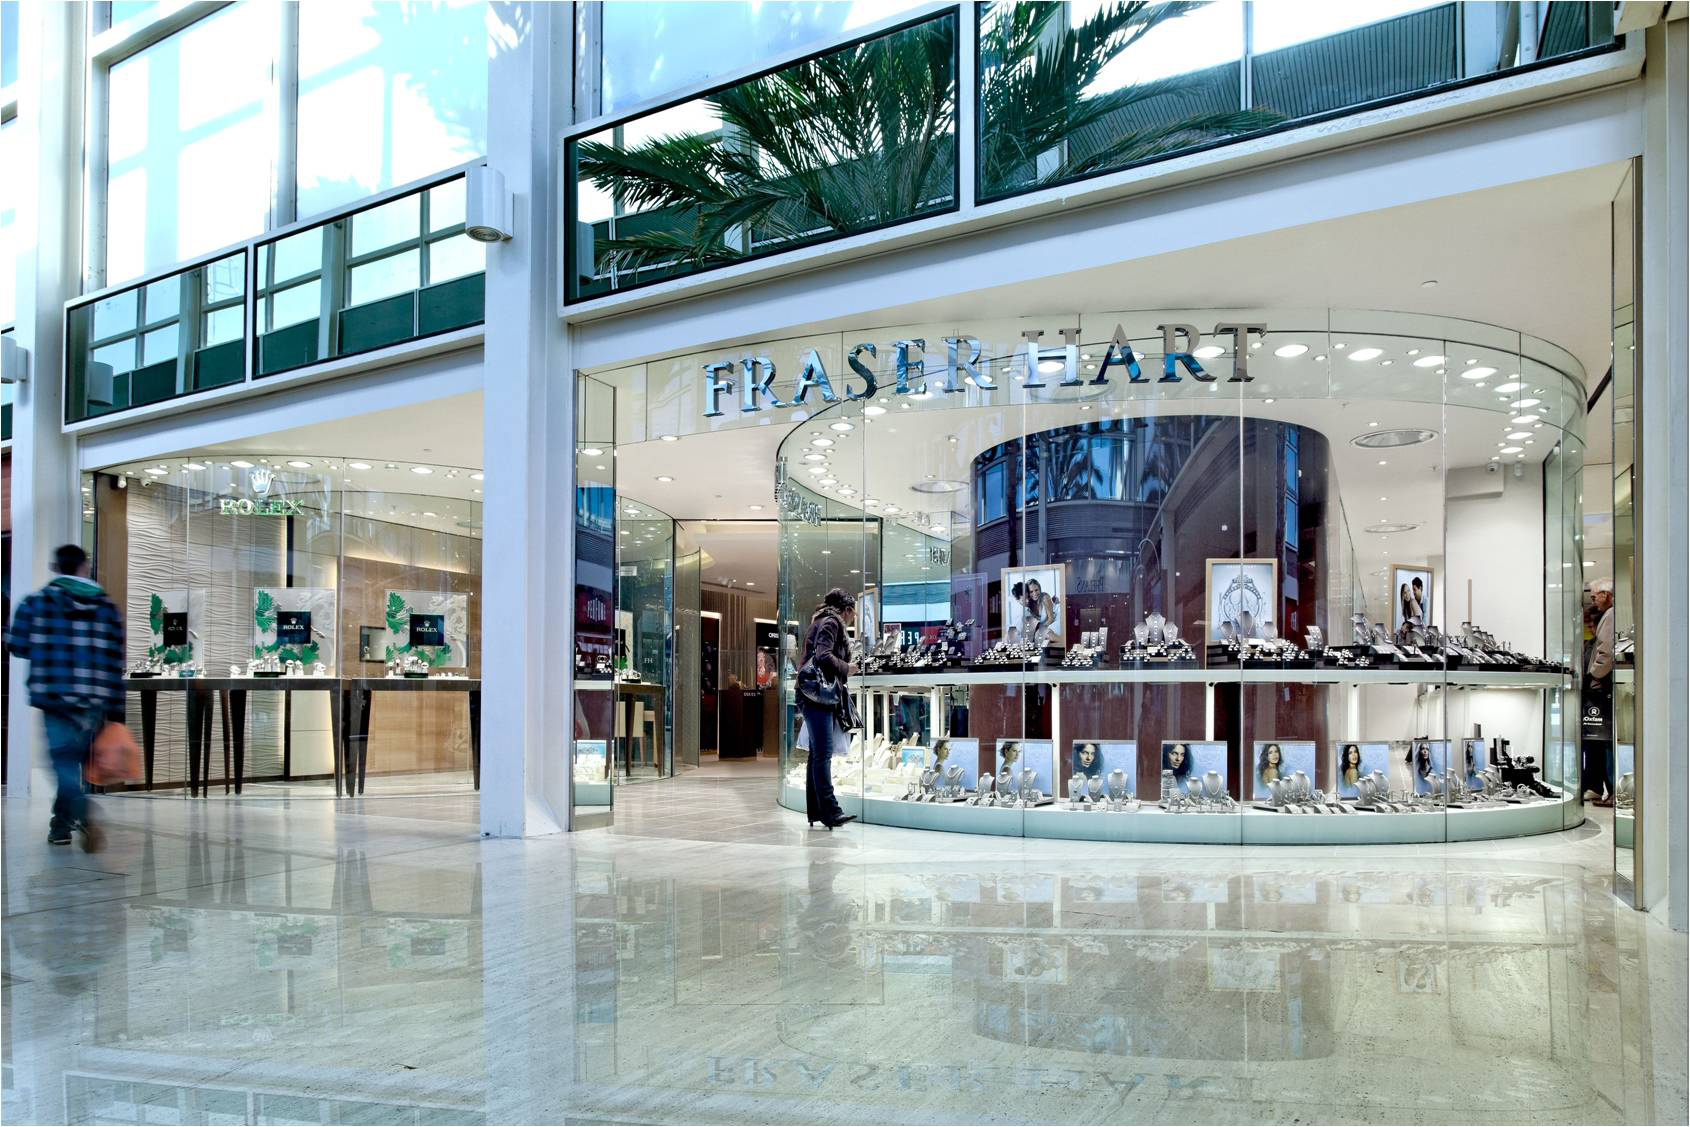 Fraser Hart in Milton Keynes shows how new stores draw people deeper into the shop to see jewellery and watches.